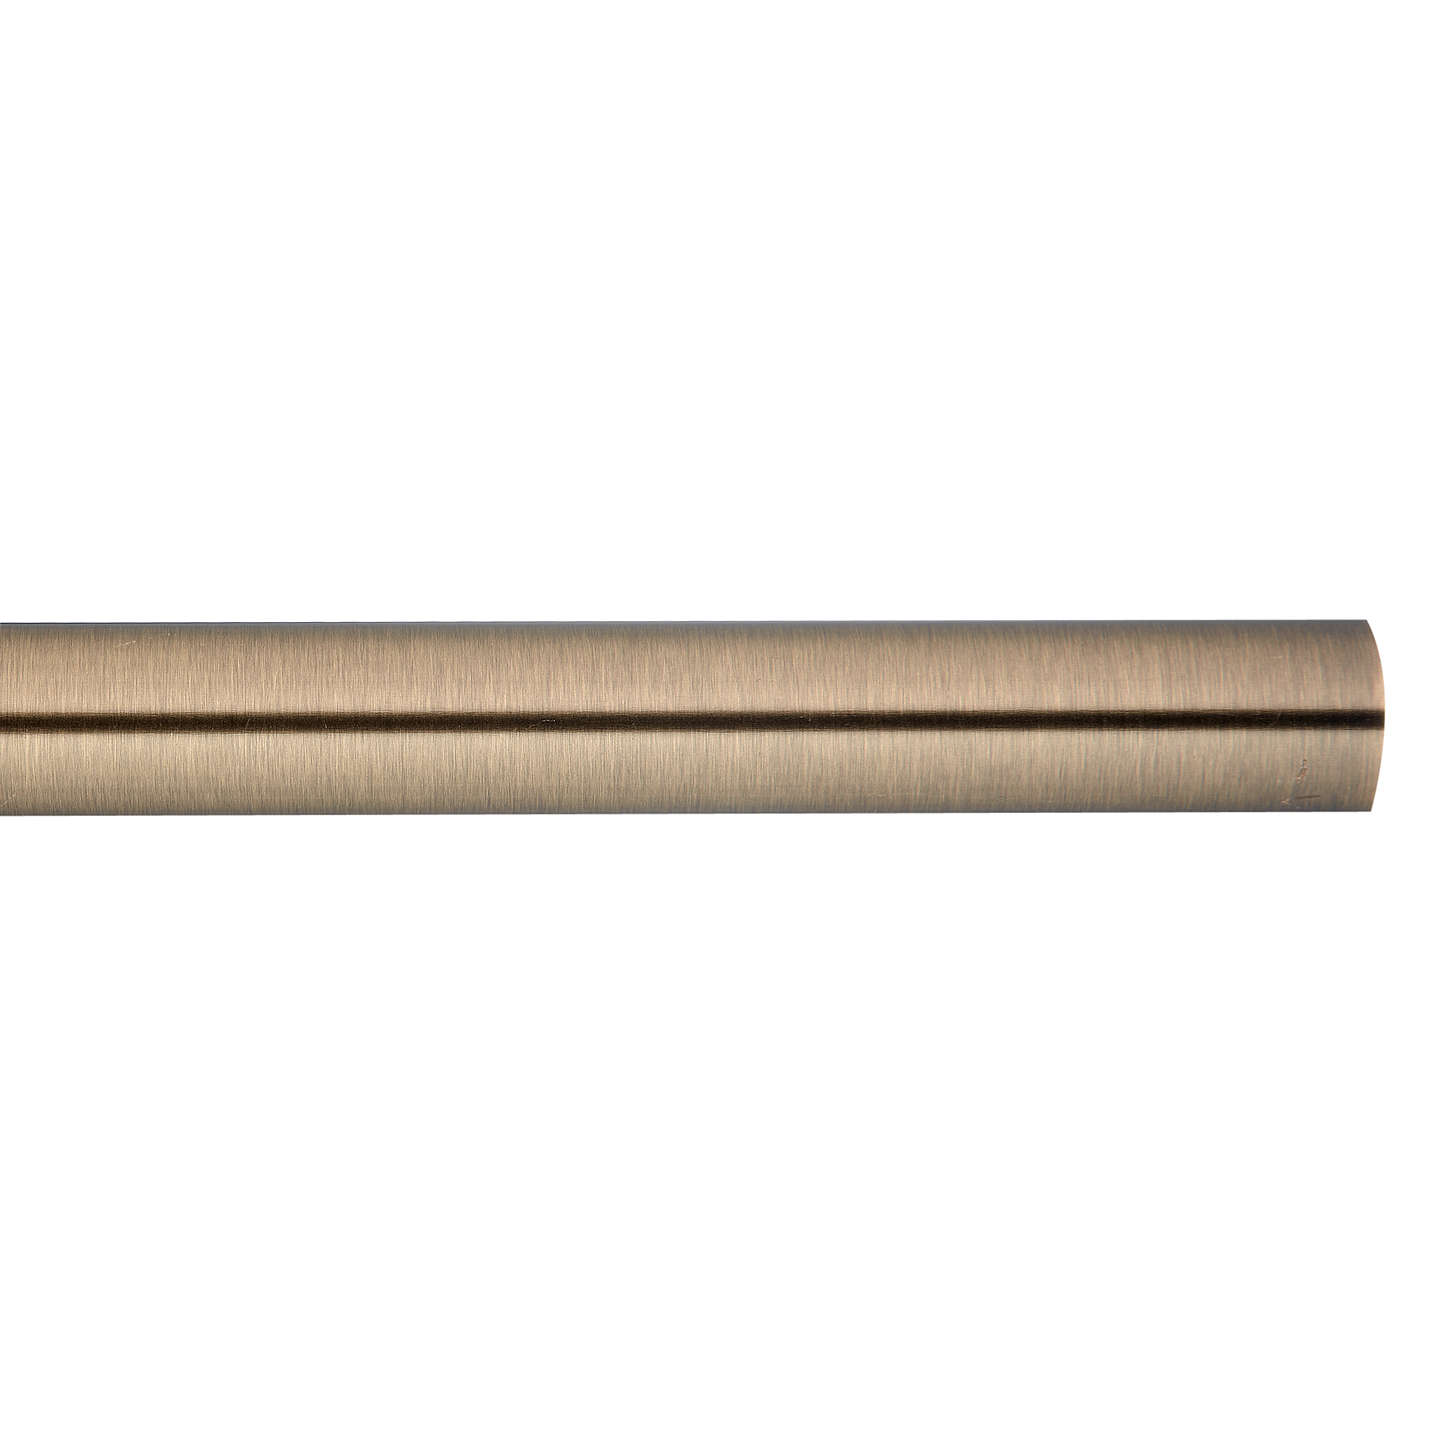 BuyJohn Lewis Antique Brass Curtain Pole, L180cm x Dia.28mm Online at johnlewis.com